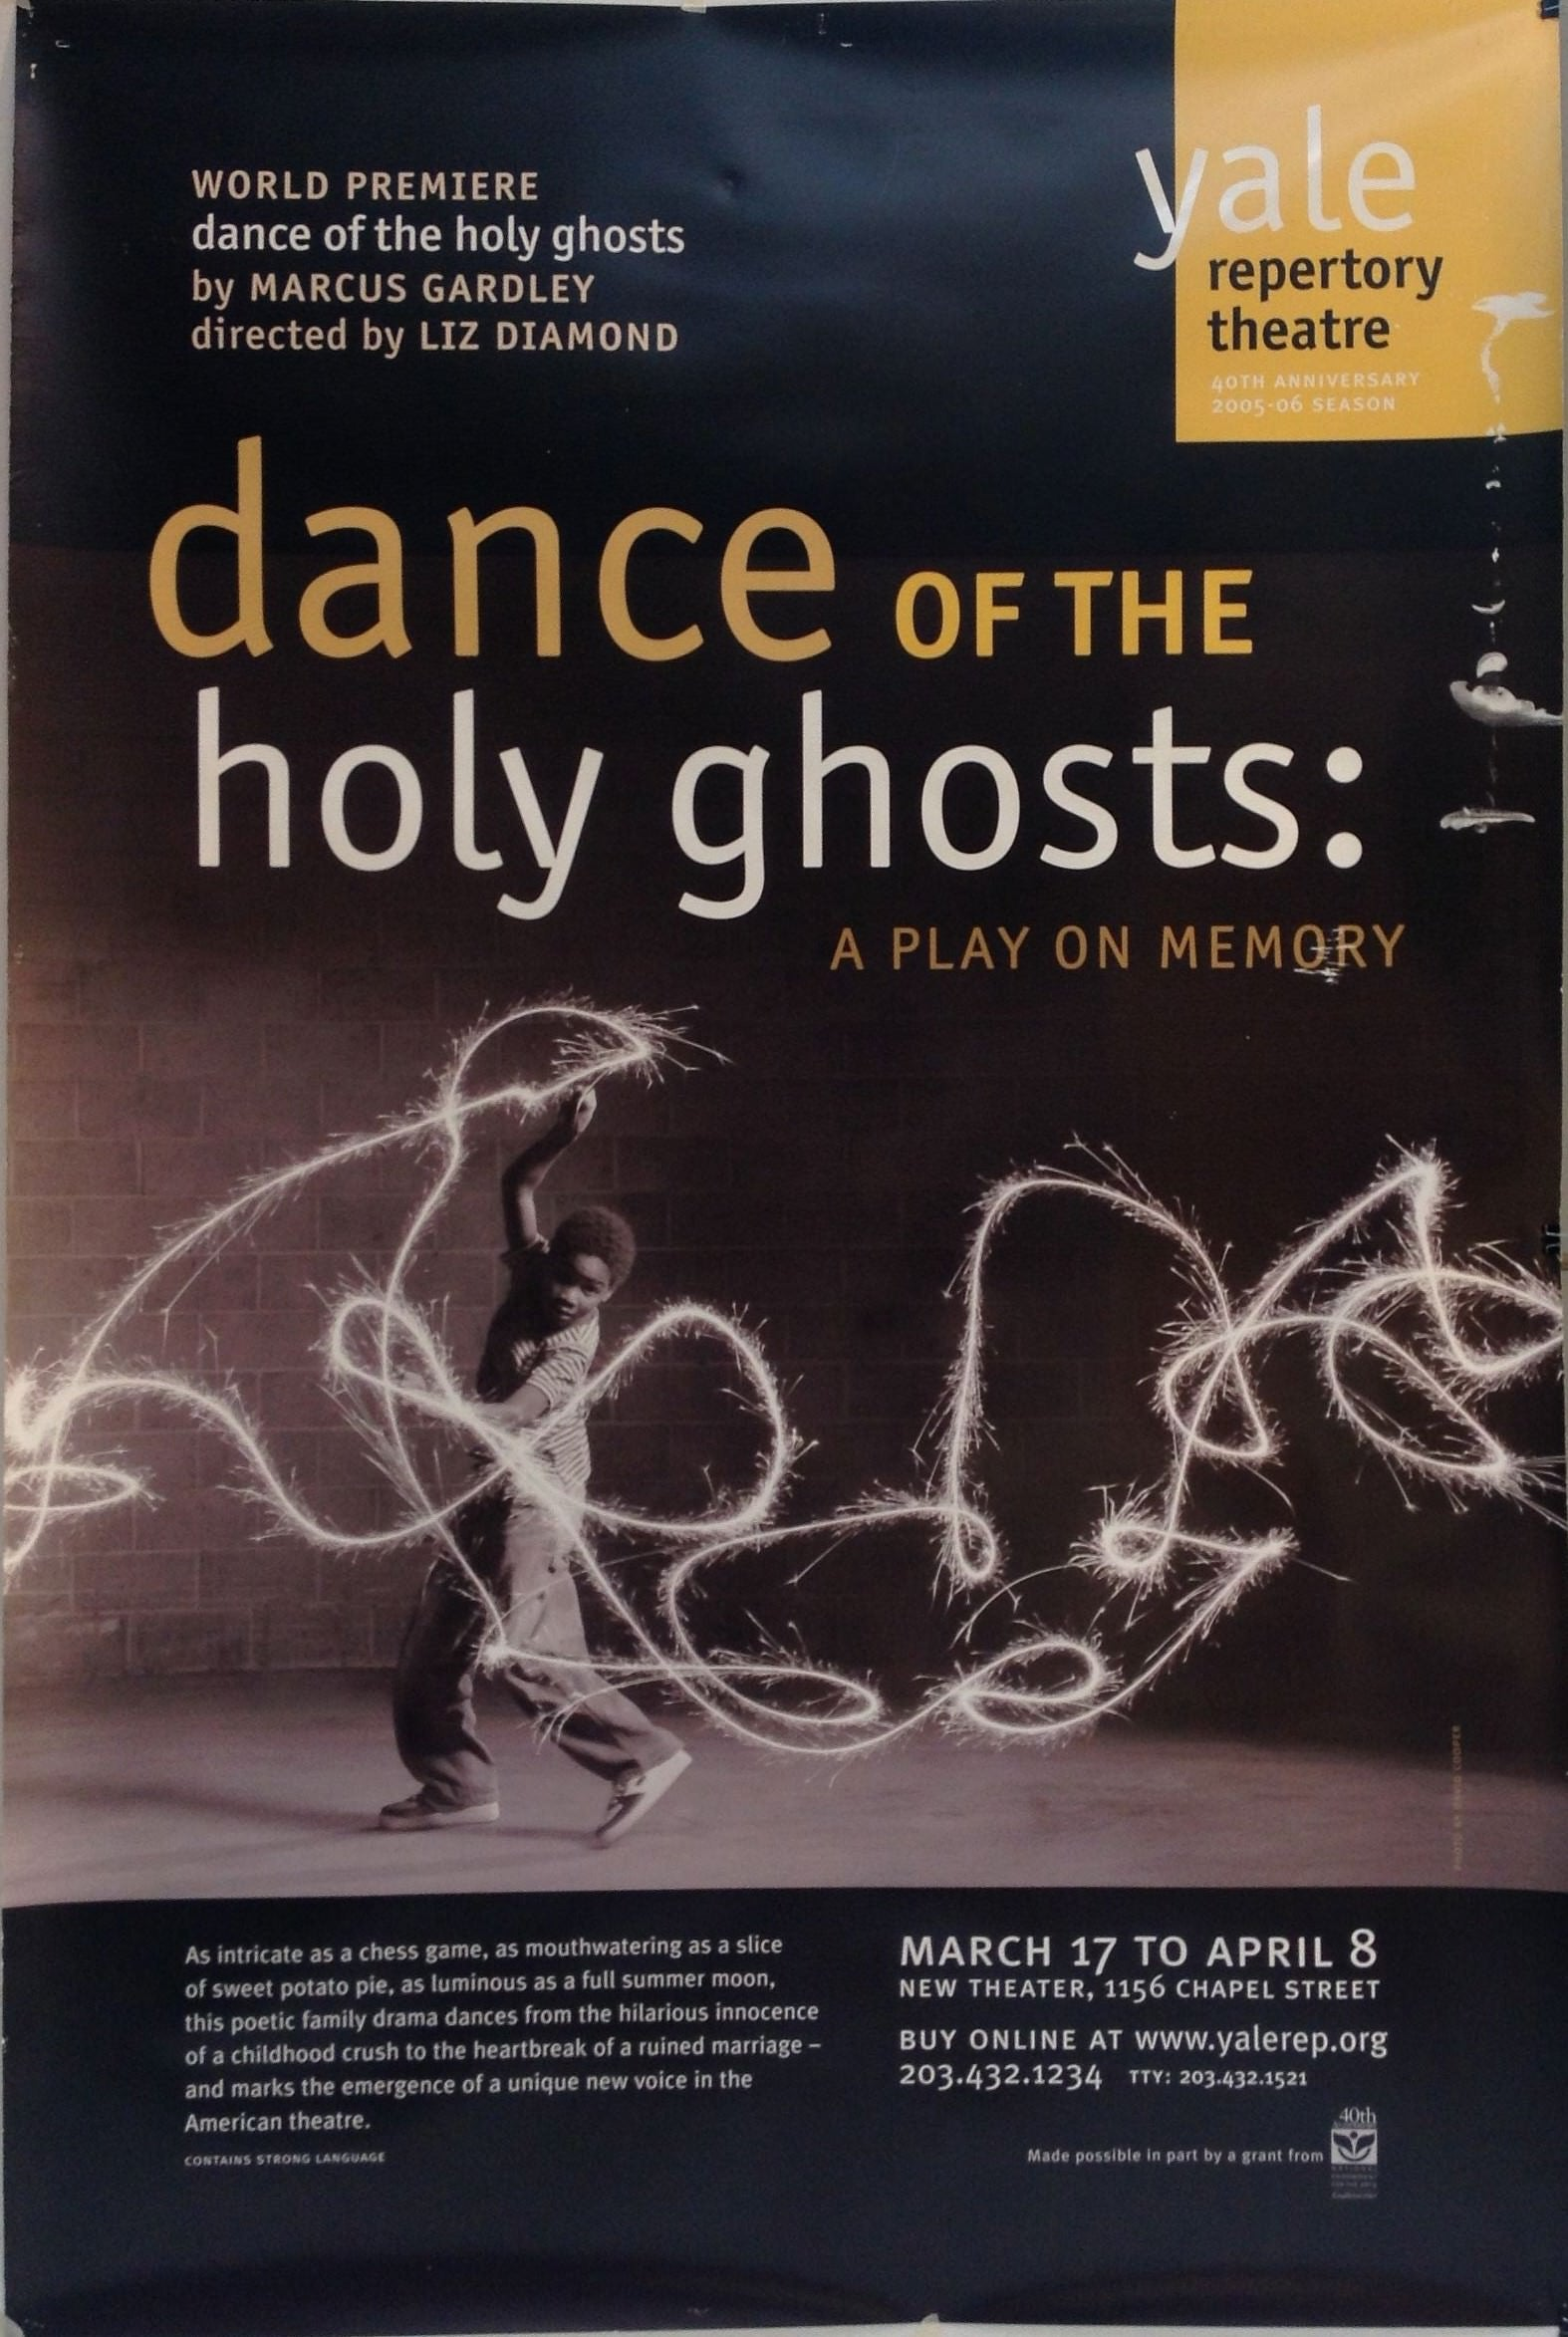 Dance of the Holy Ghosts: A Play on Memory